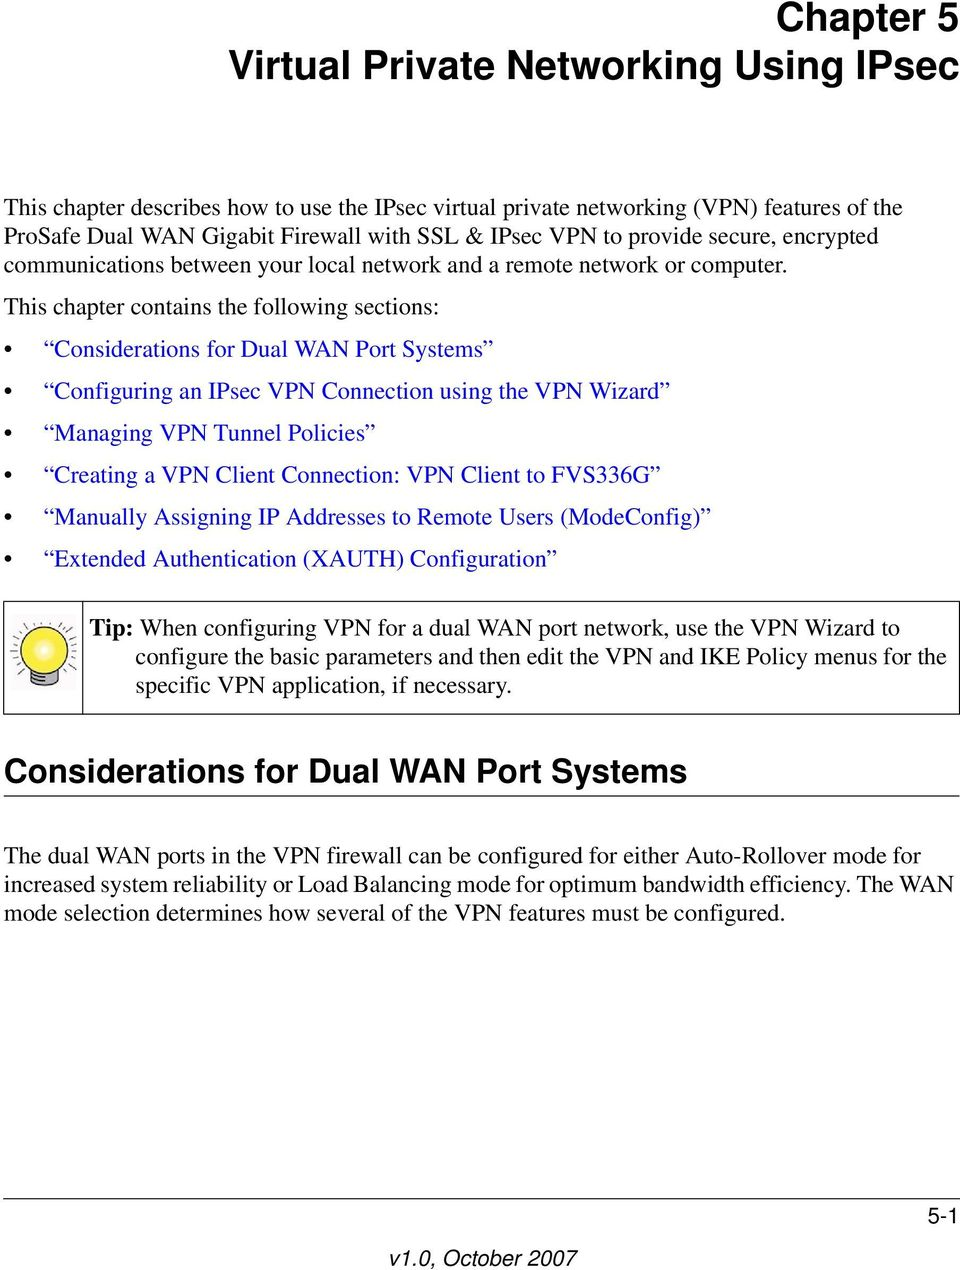 This chapter contains the following sections: Considerations for Dual WAN Port Systems Configuring an IPsec VPN Connection using the VPN Wizard Managing VPN Tunnel Policies Creating a VPN Client